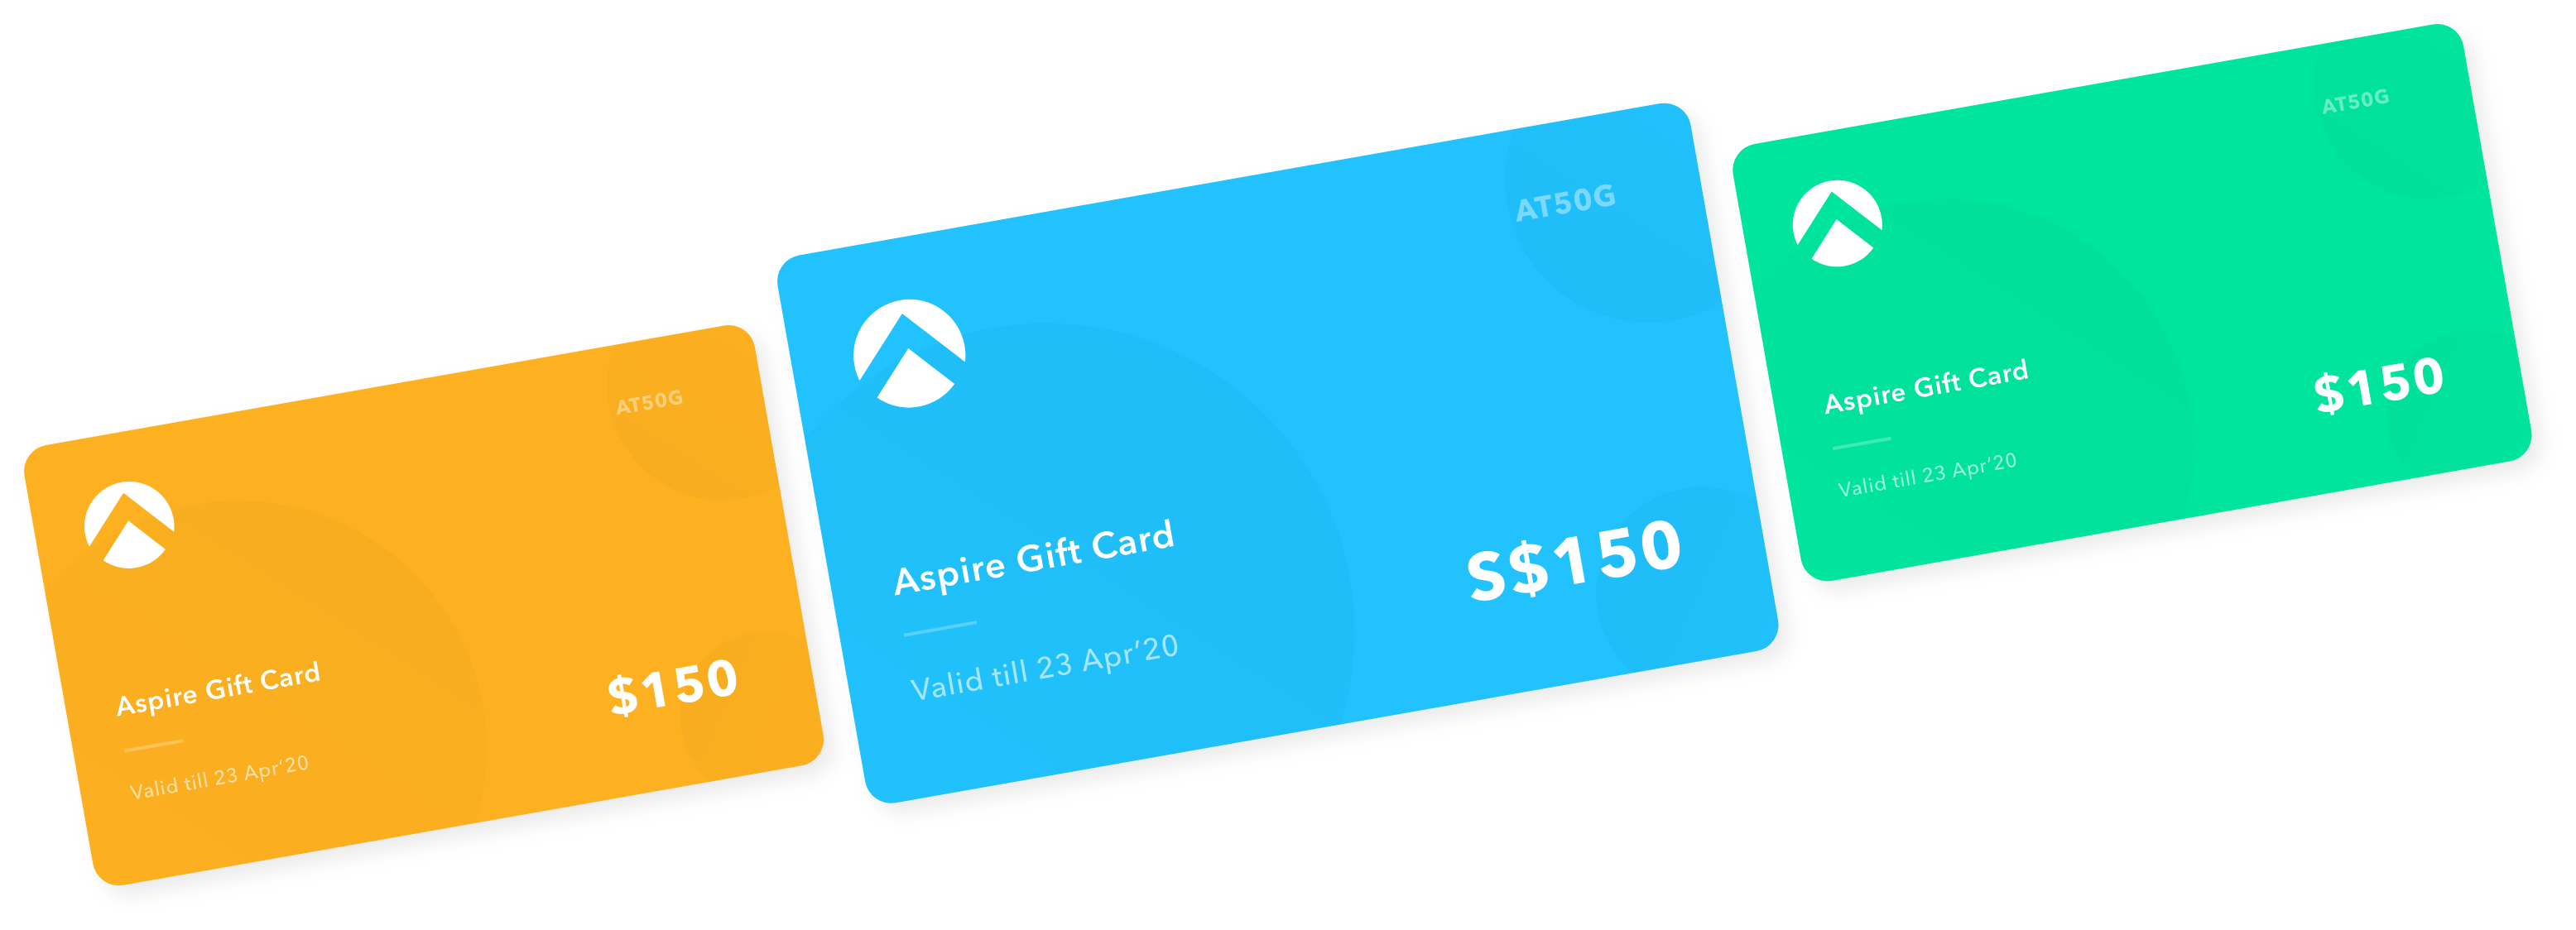 Create Gift Cards for Free: ASPIRE Launches COVID-19 Support for SMEs